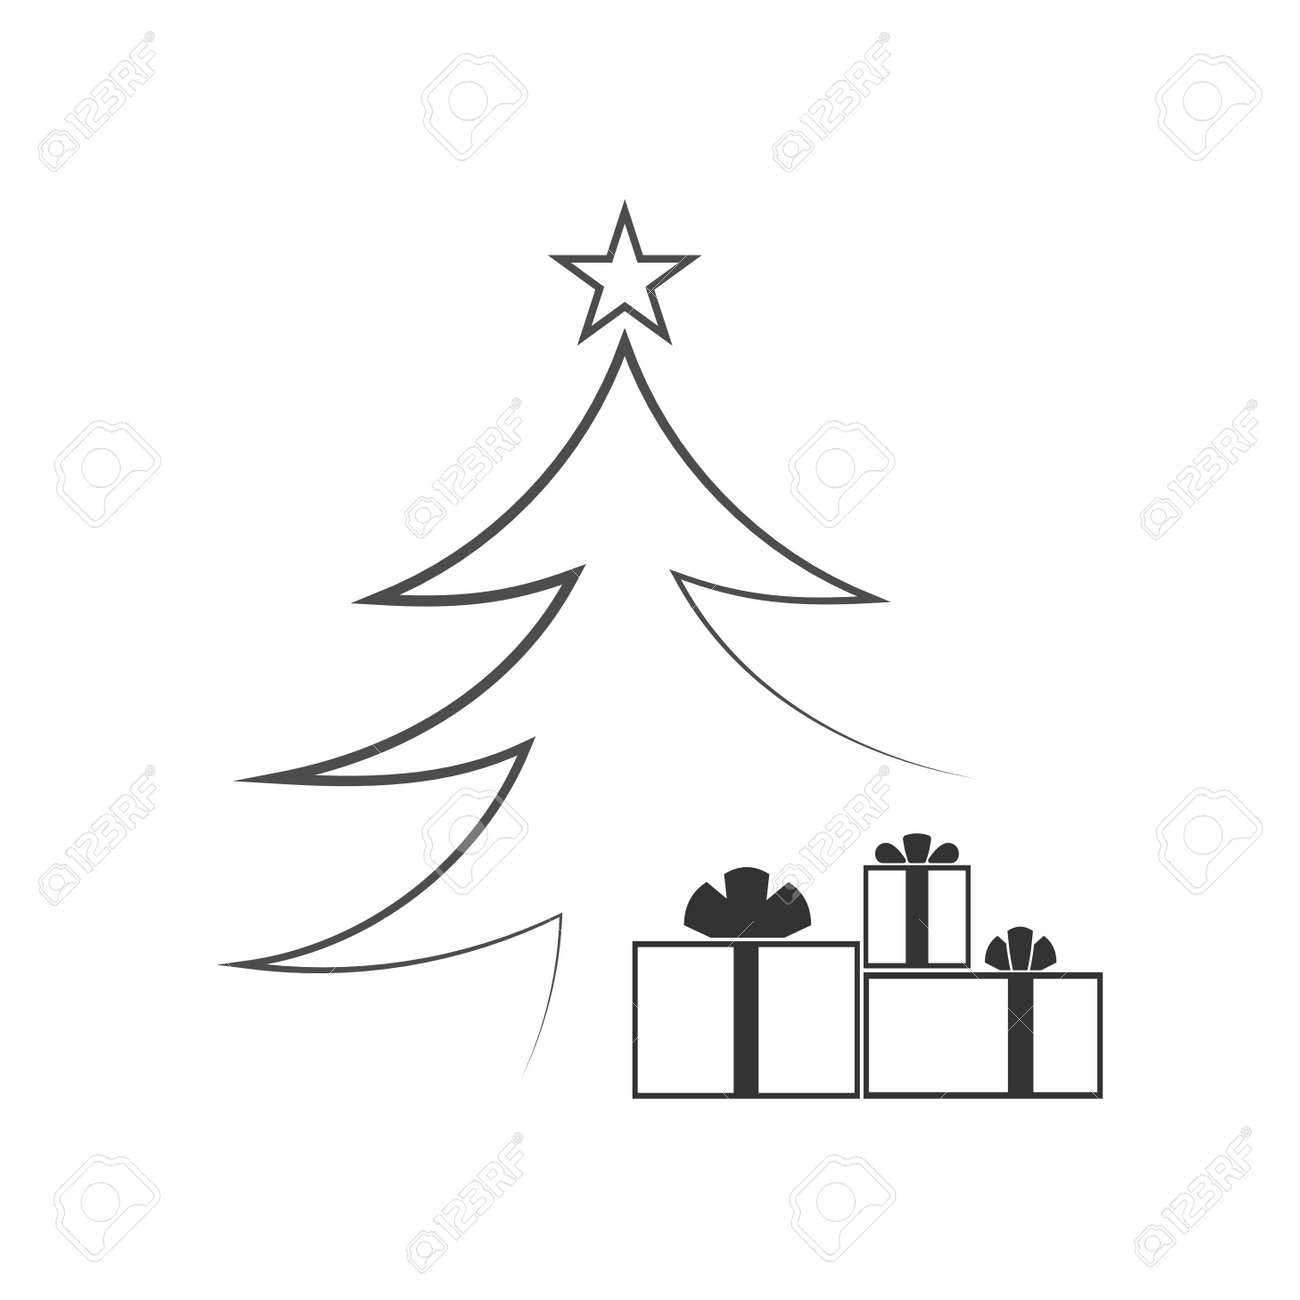 Christmas Images Cartoon Black And White.Christmas Tree With Star Gift Cartoon Icon Black Silhouette